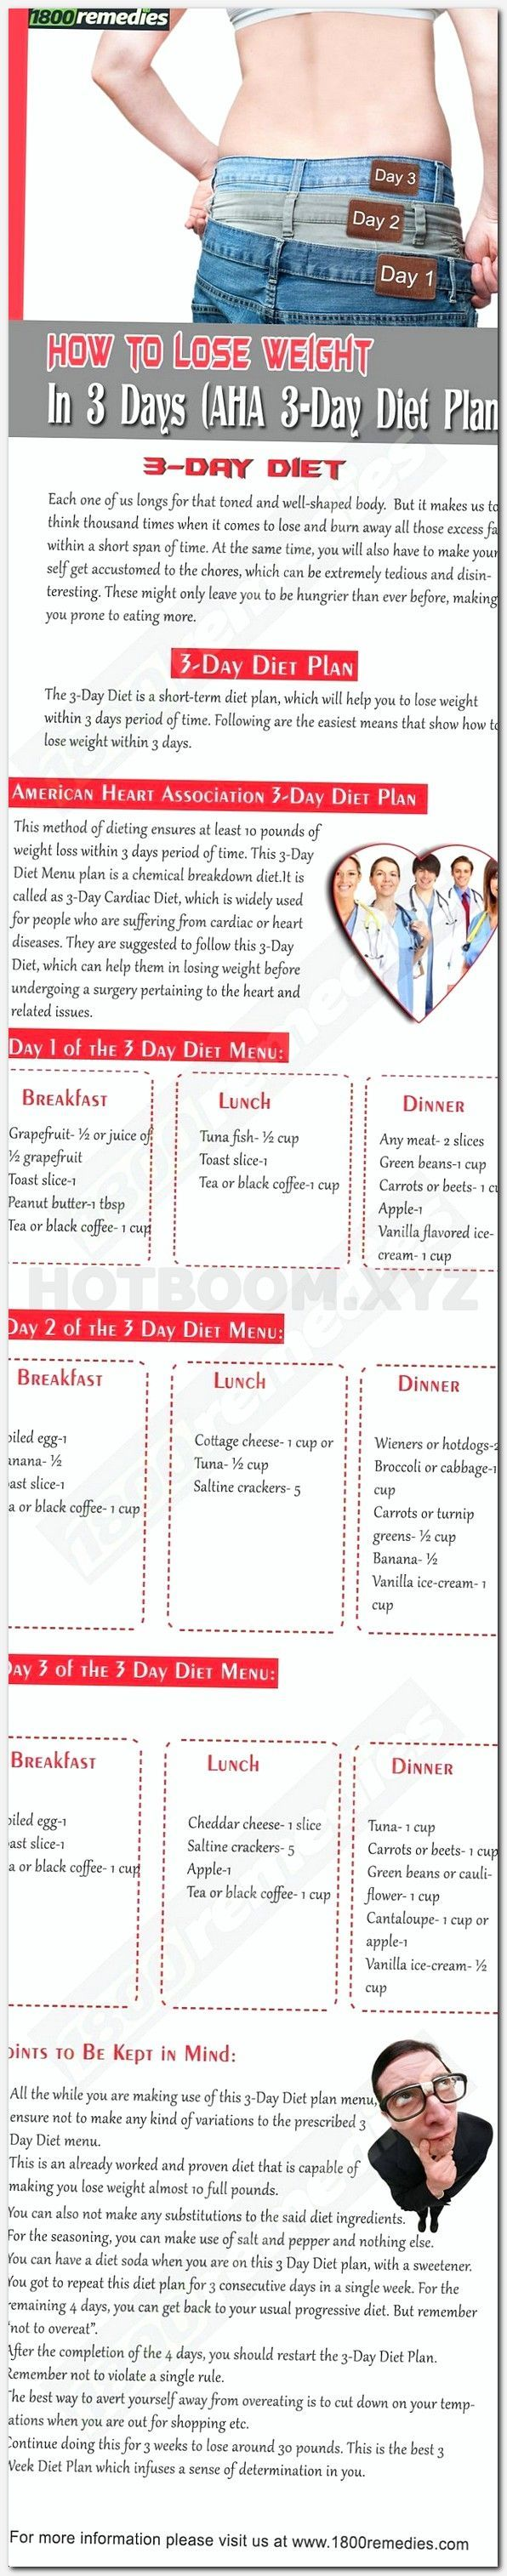 The 25 best weight chart for men ideas on pinterest workouts full liquid diet list height and weight chart for men diet with soup protein content in foods things to eat that burn fat i am obese and want to lose nvjuhfo Gallery